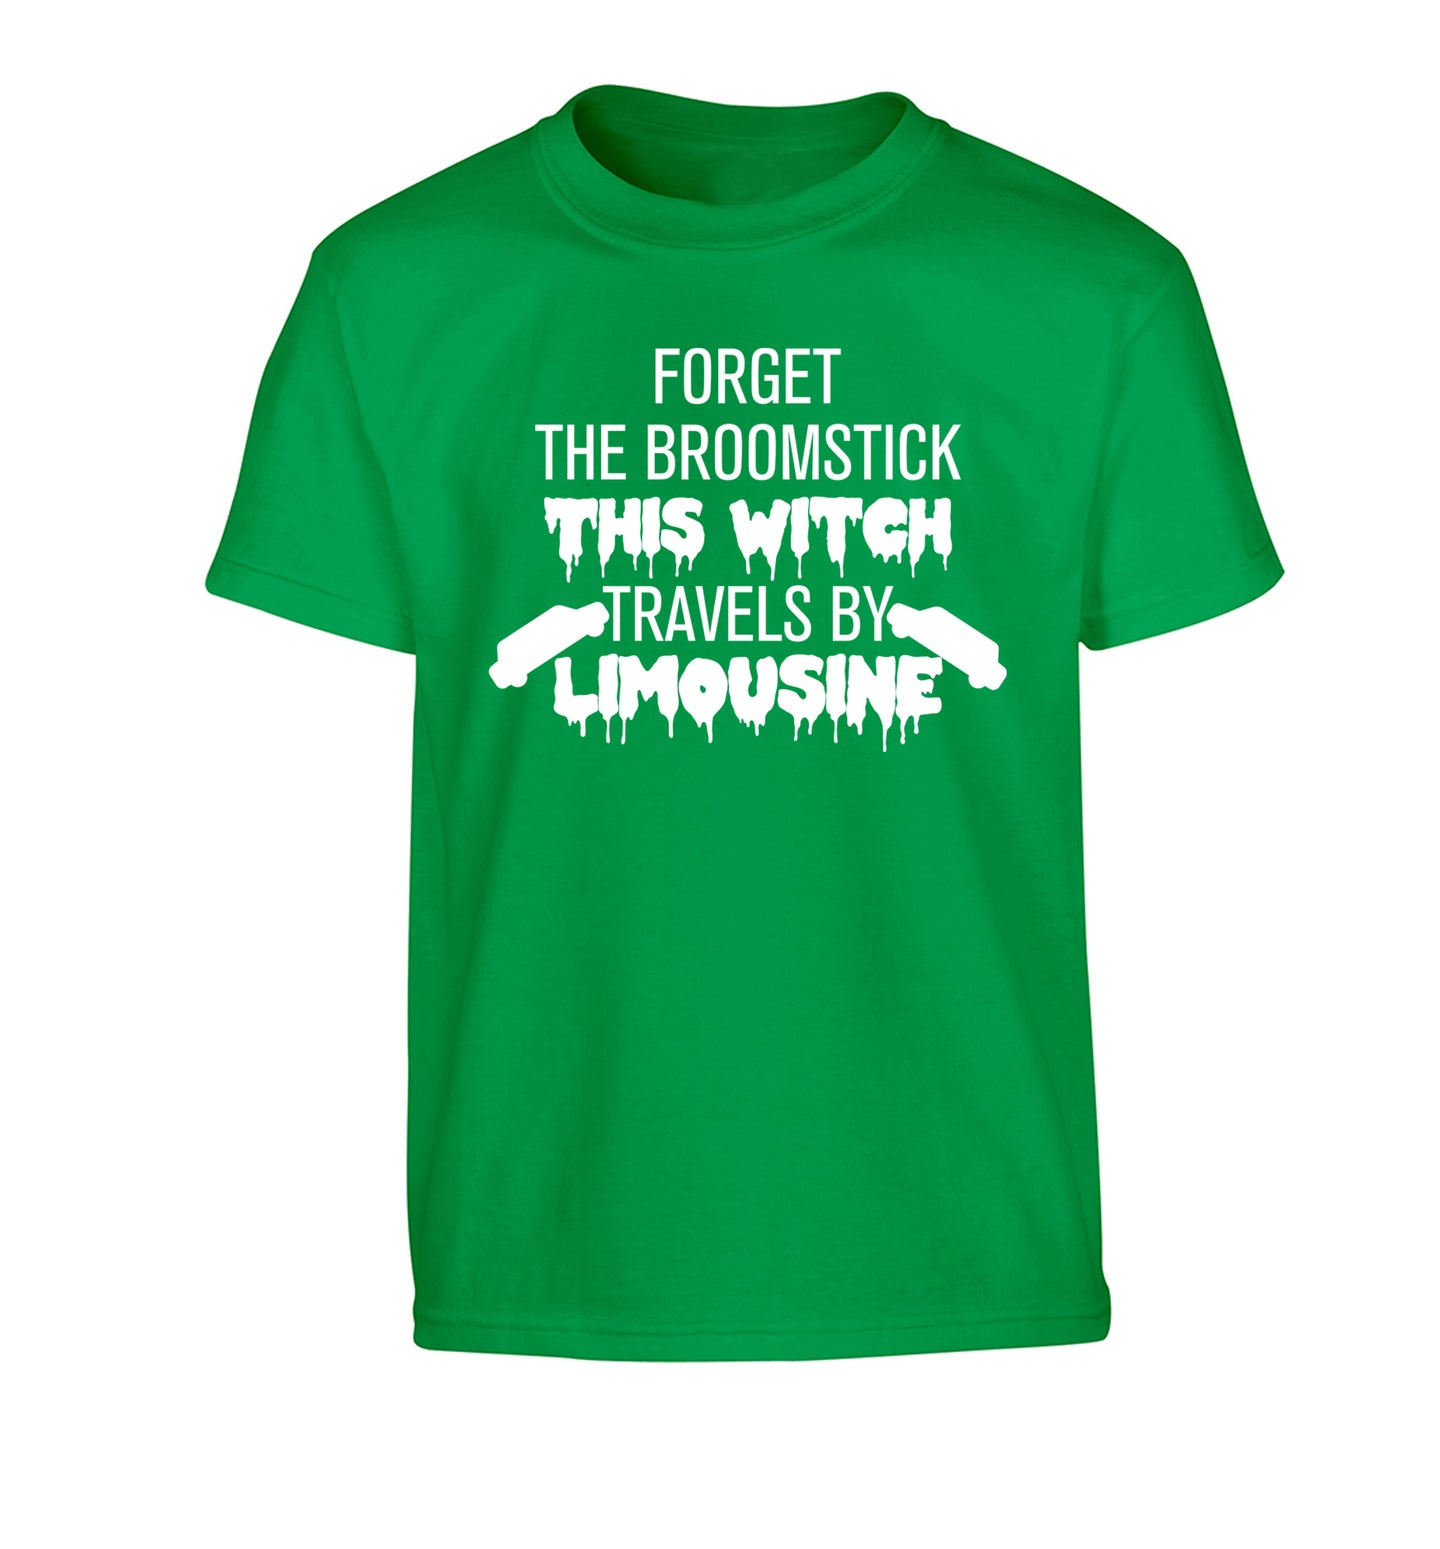 Forget the broomstick this witch travels by limousine Children's green Tshirt 12-14 Years